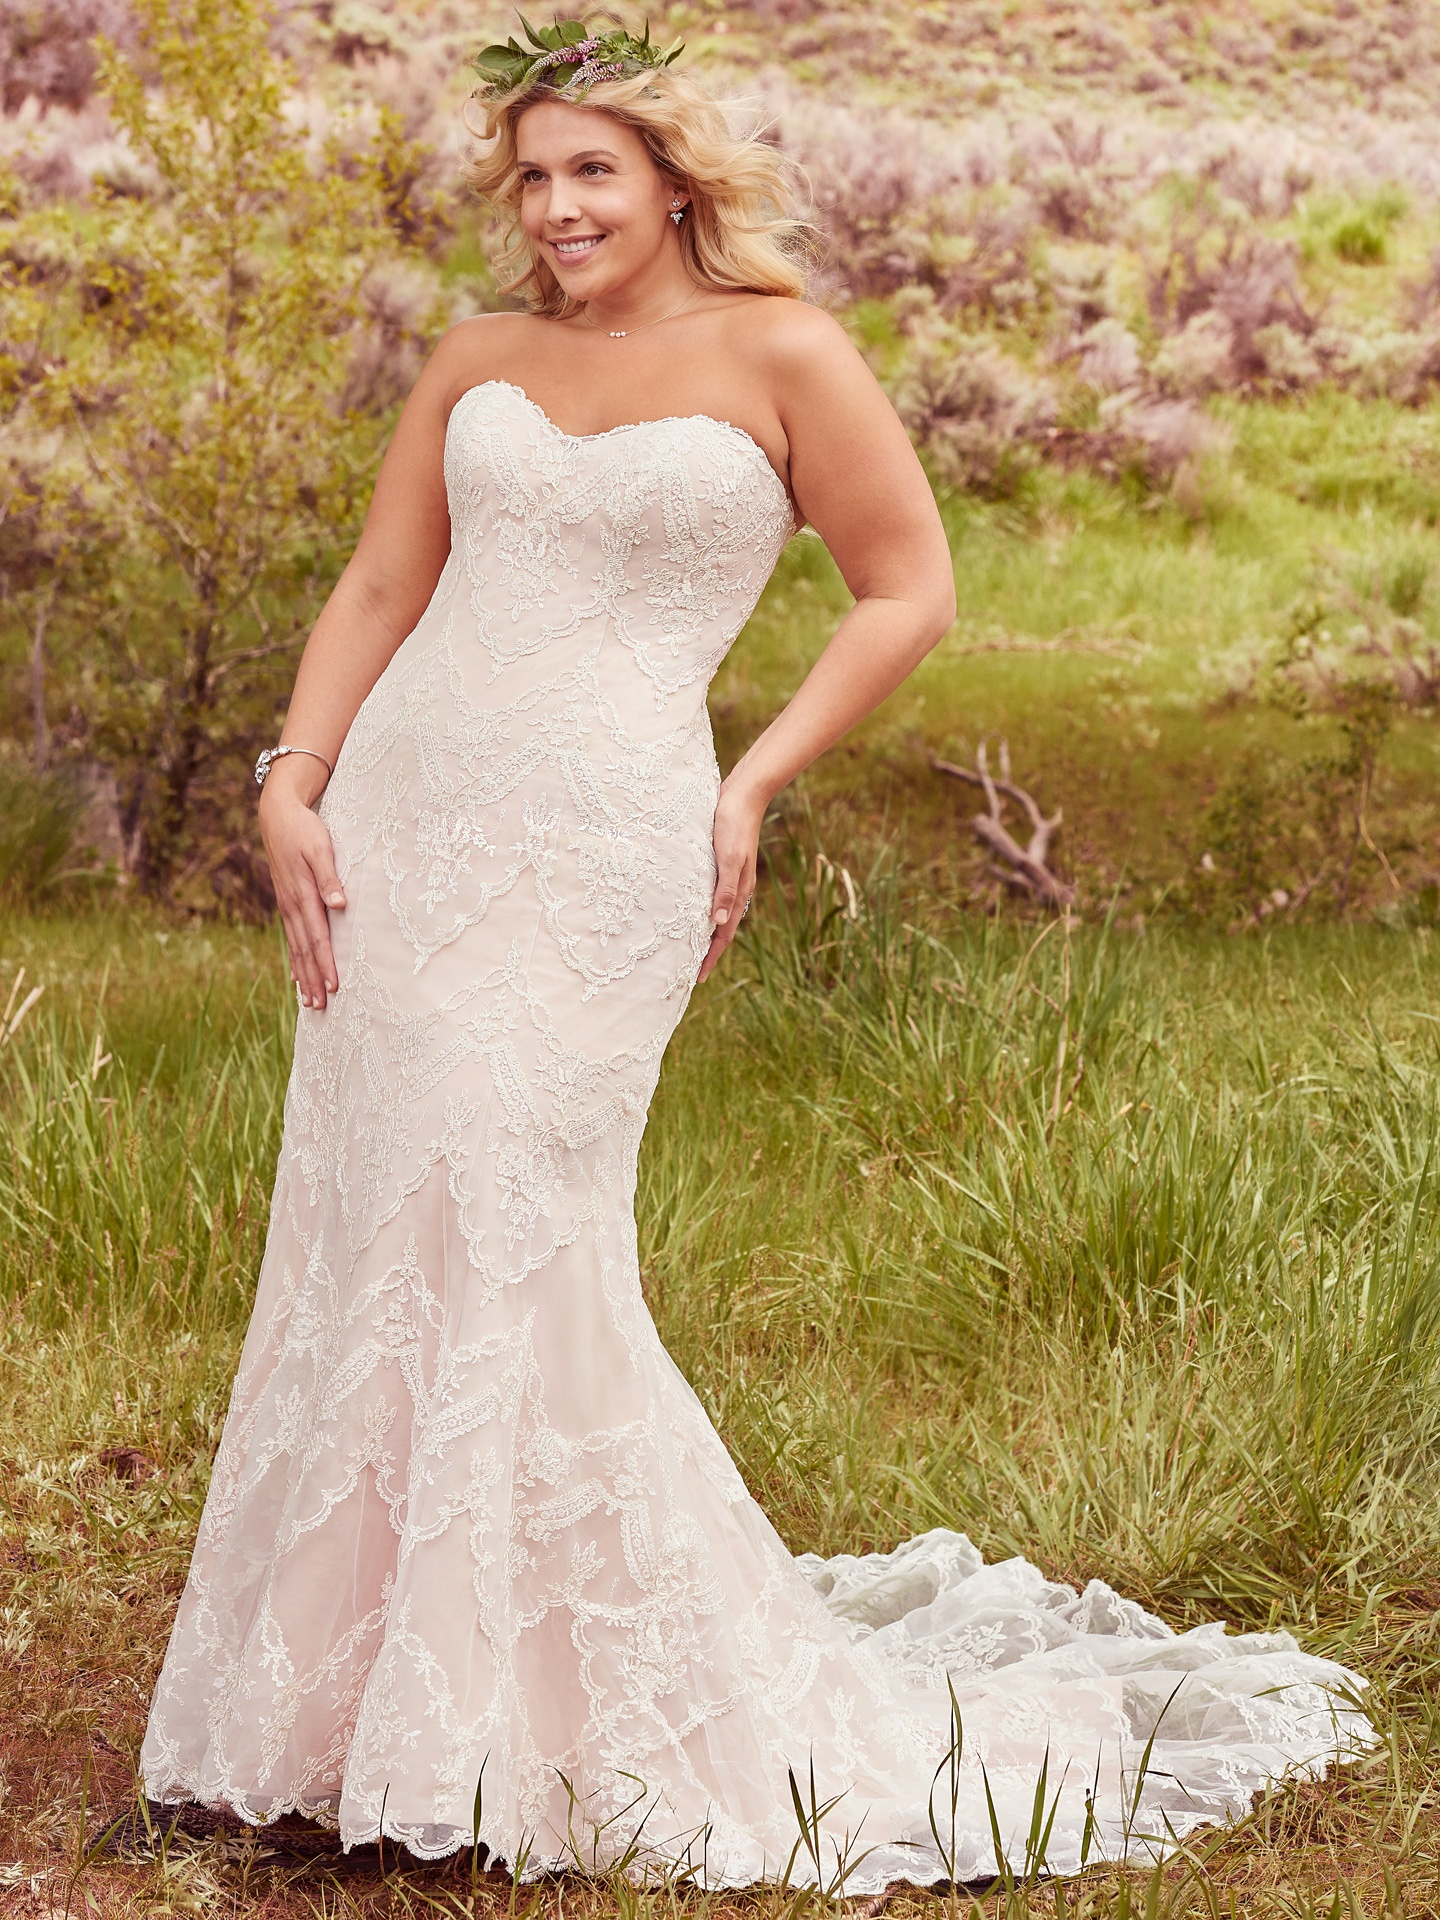 Kirstie by Maggie Sottero. Elegant lace appliqués drift atop tulle to create this breathtaking boho wedding dress with sheath silhouette, with a timeless, romantic sweetheart neckline.